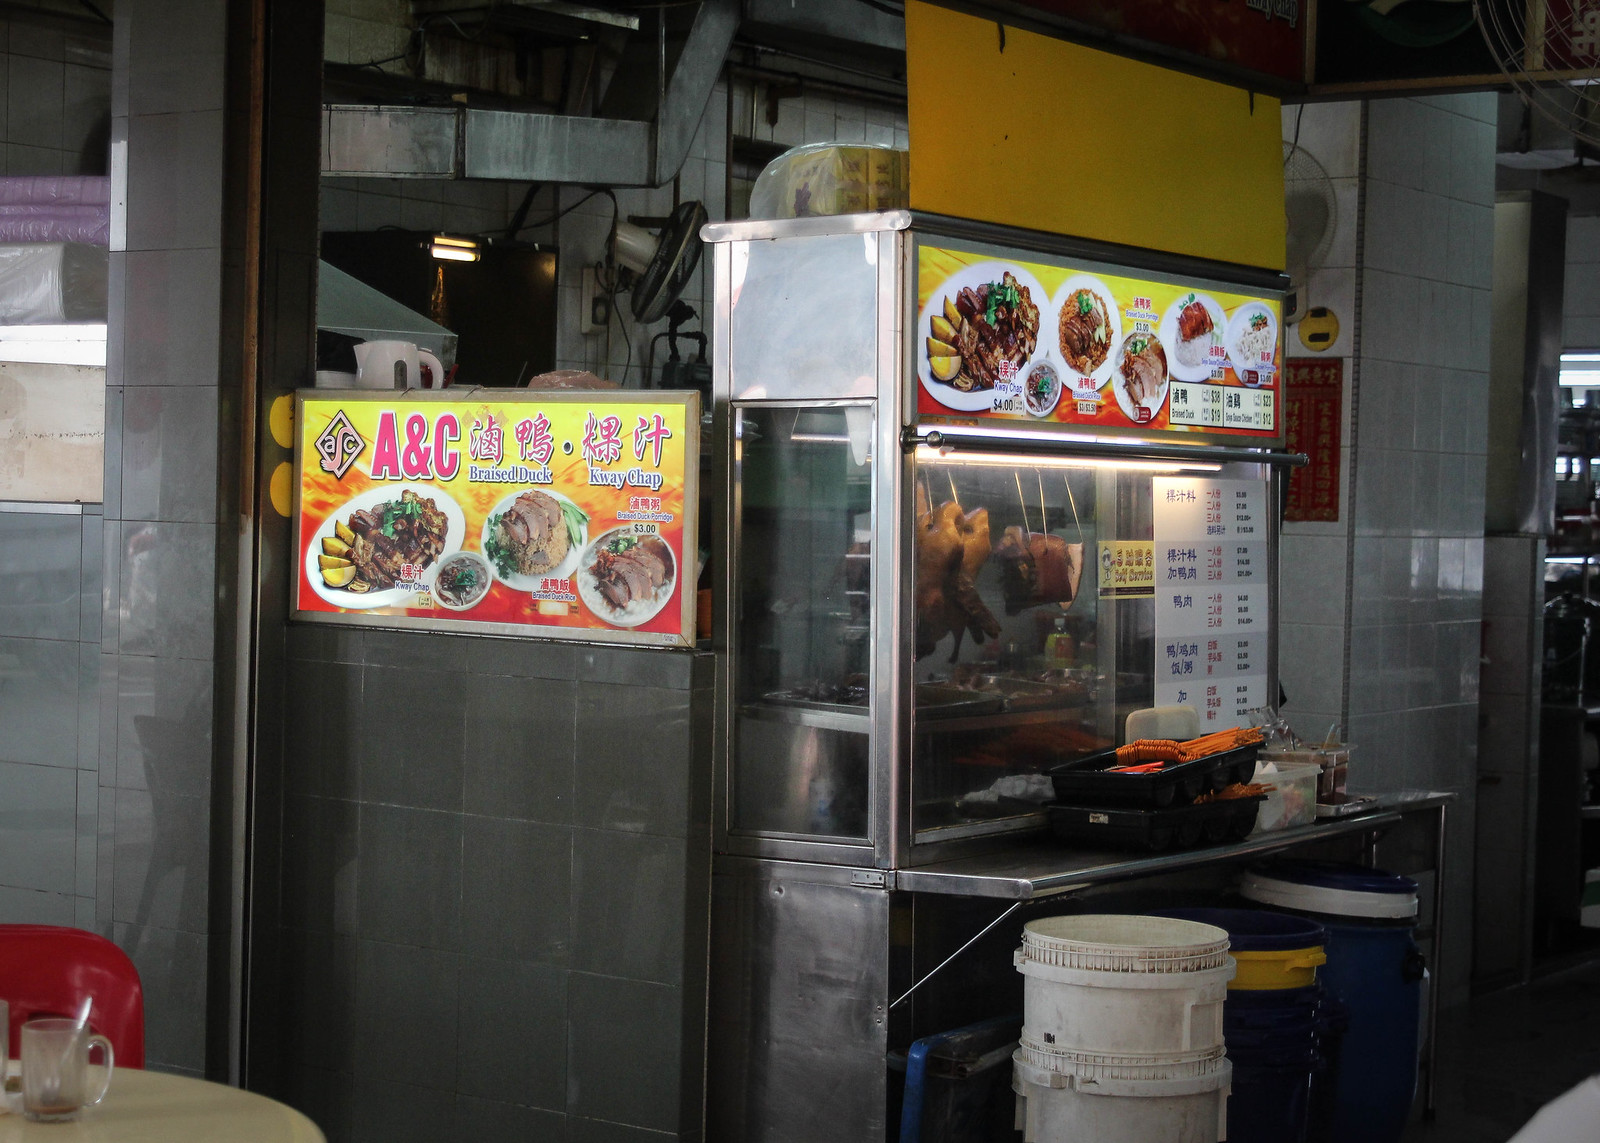 A&C Kway Chap_Stall